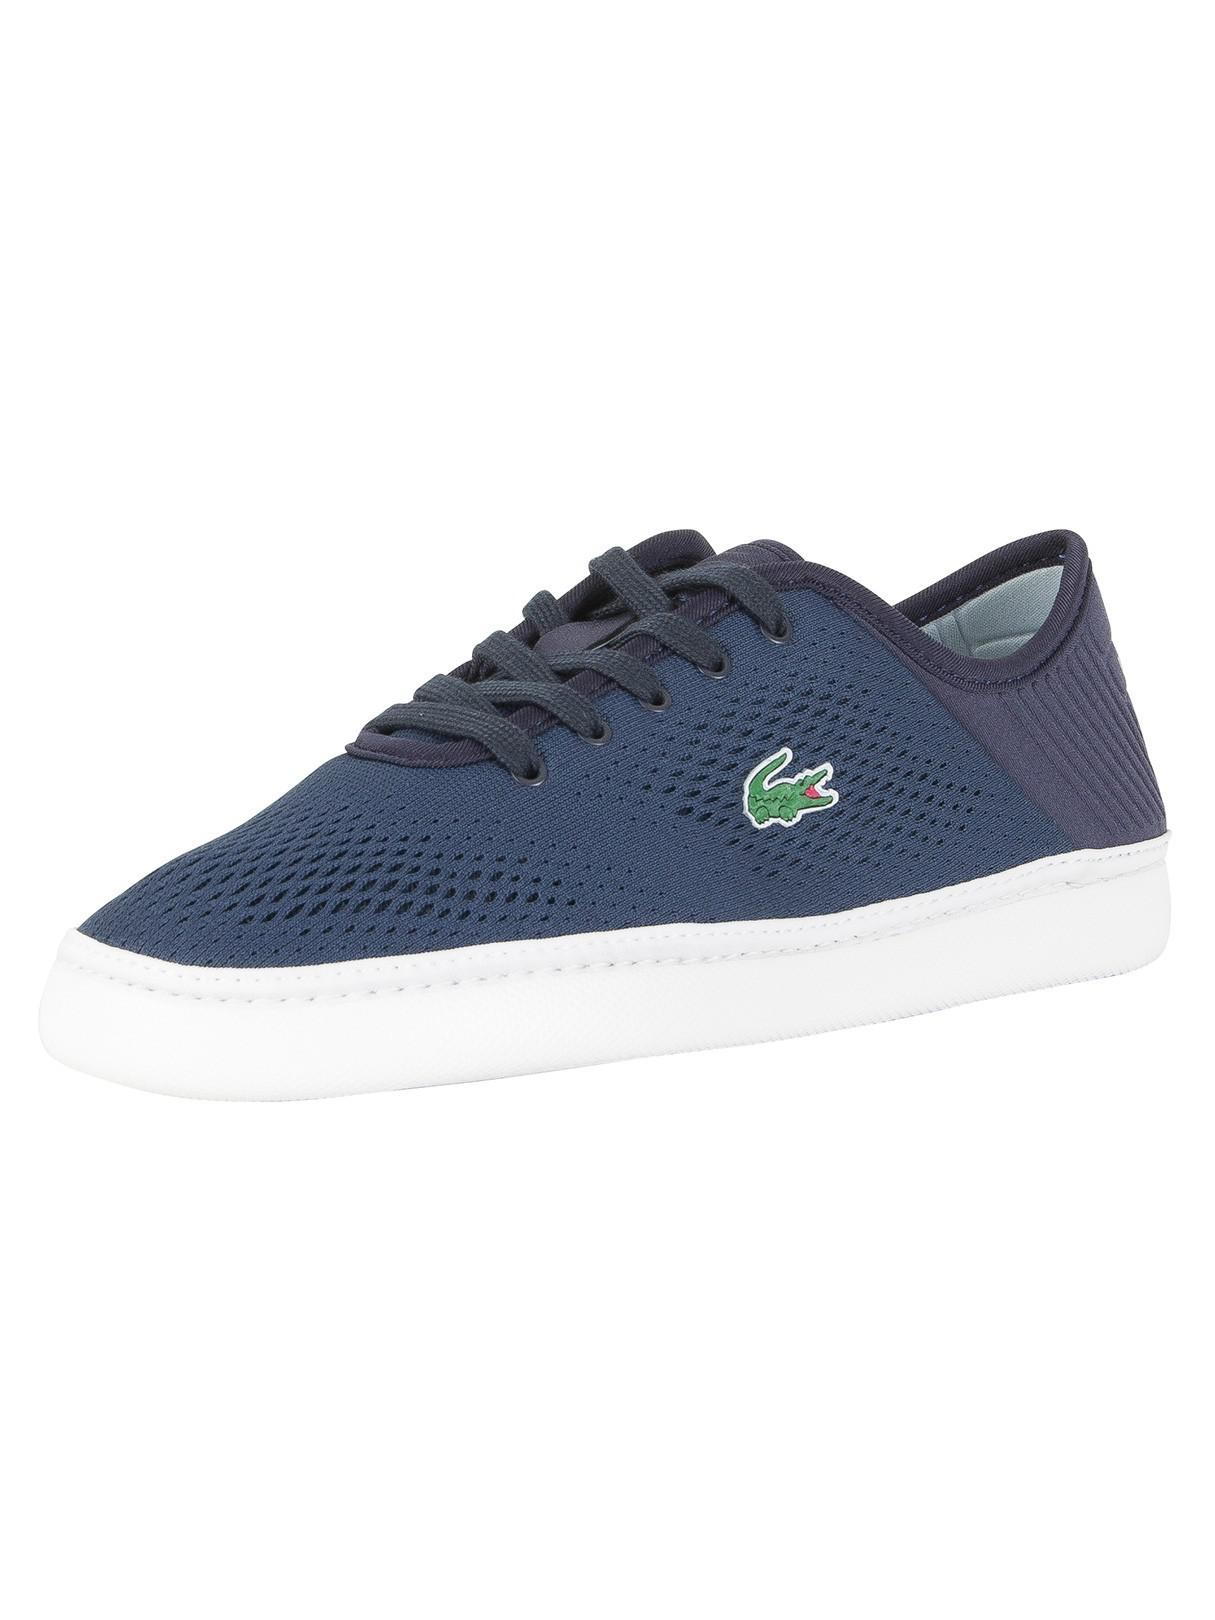 d895fd623 Lyst - Lacoste Navy white L.ydro Lace 118 1 Cam Trainers in Blue for Men